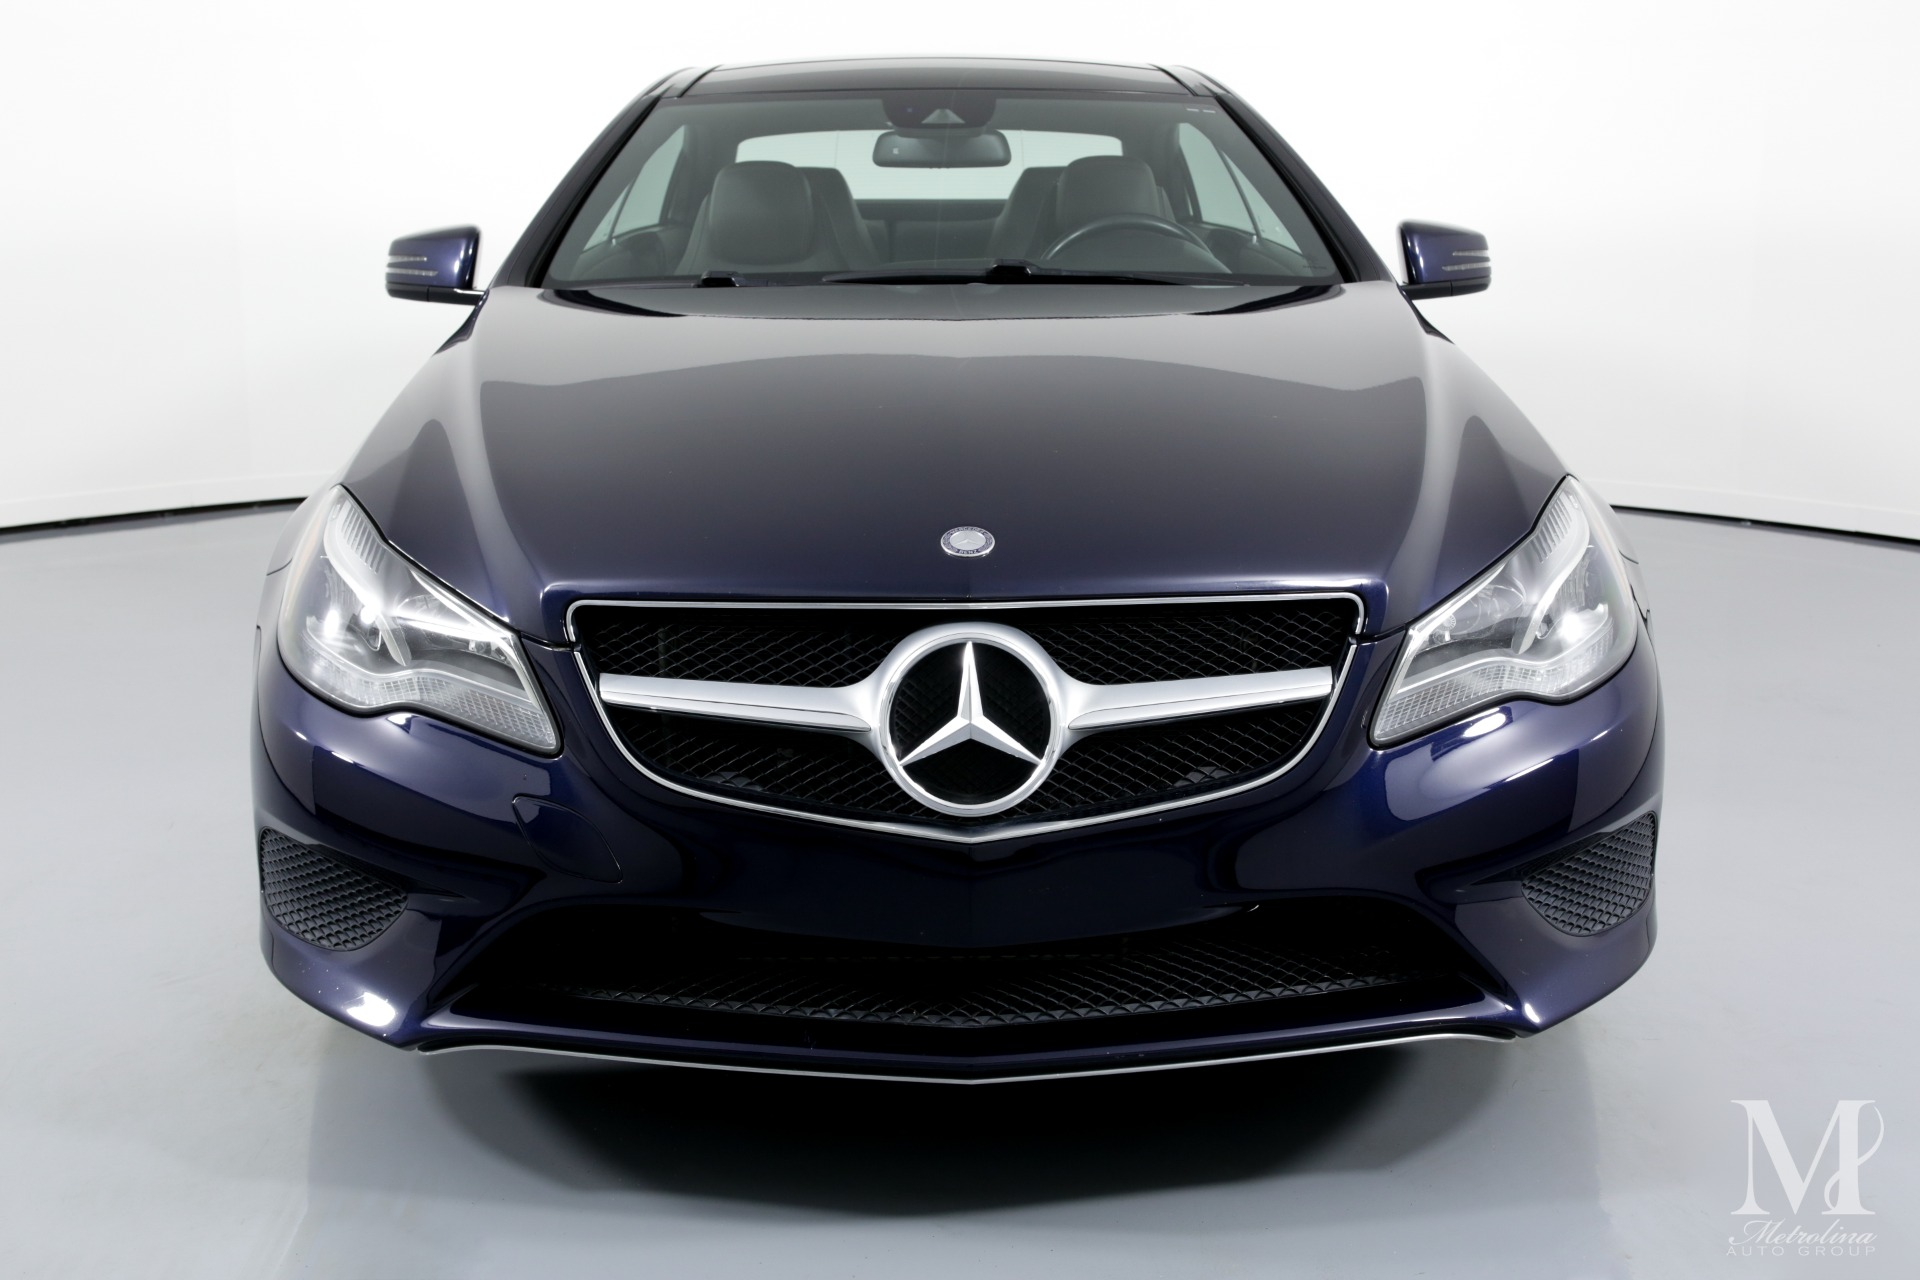 Used 2014 Mercedes-Benz E-Class E 350 4MATIC AWD 2dr Coupe for sale $21,750 at Metrolina Auto Group in Charlotte NC 28217 - 3